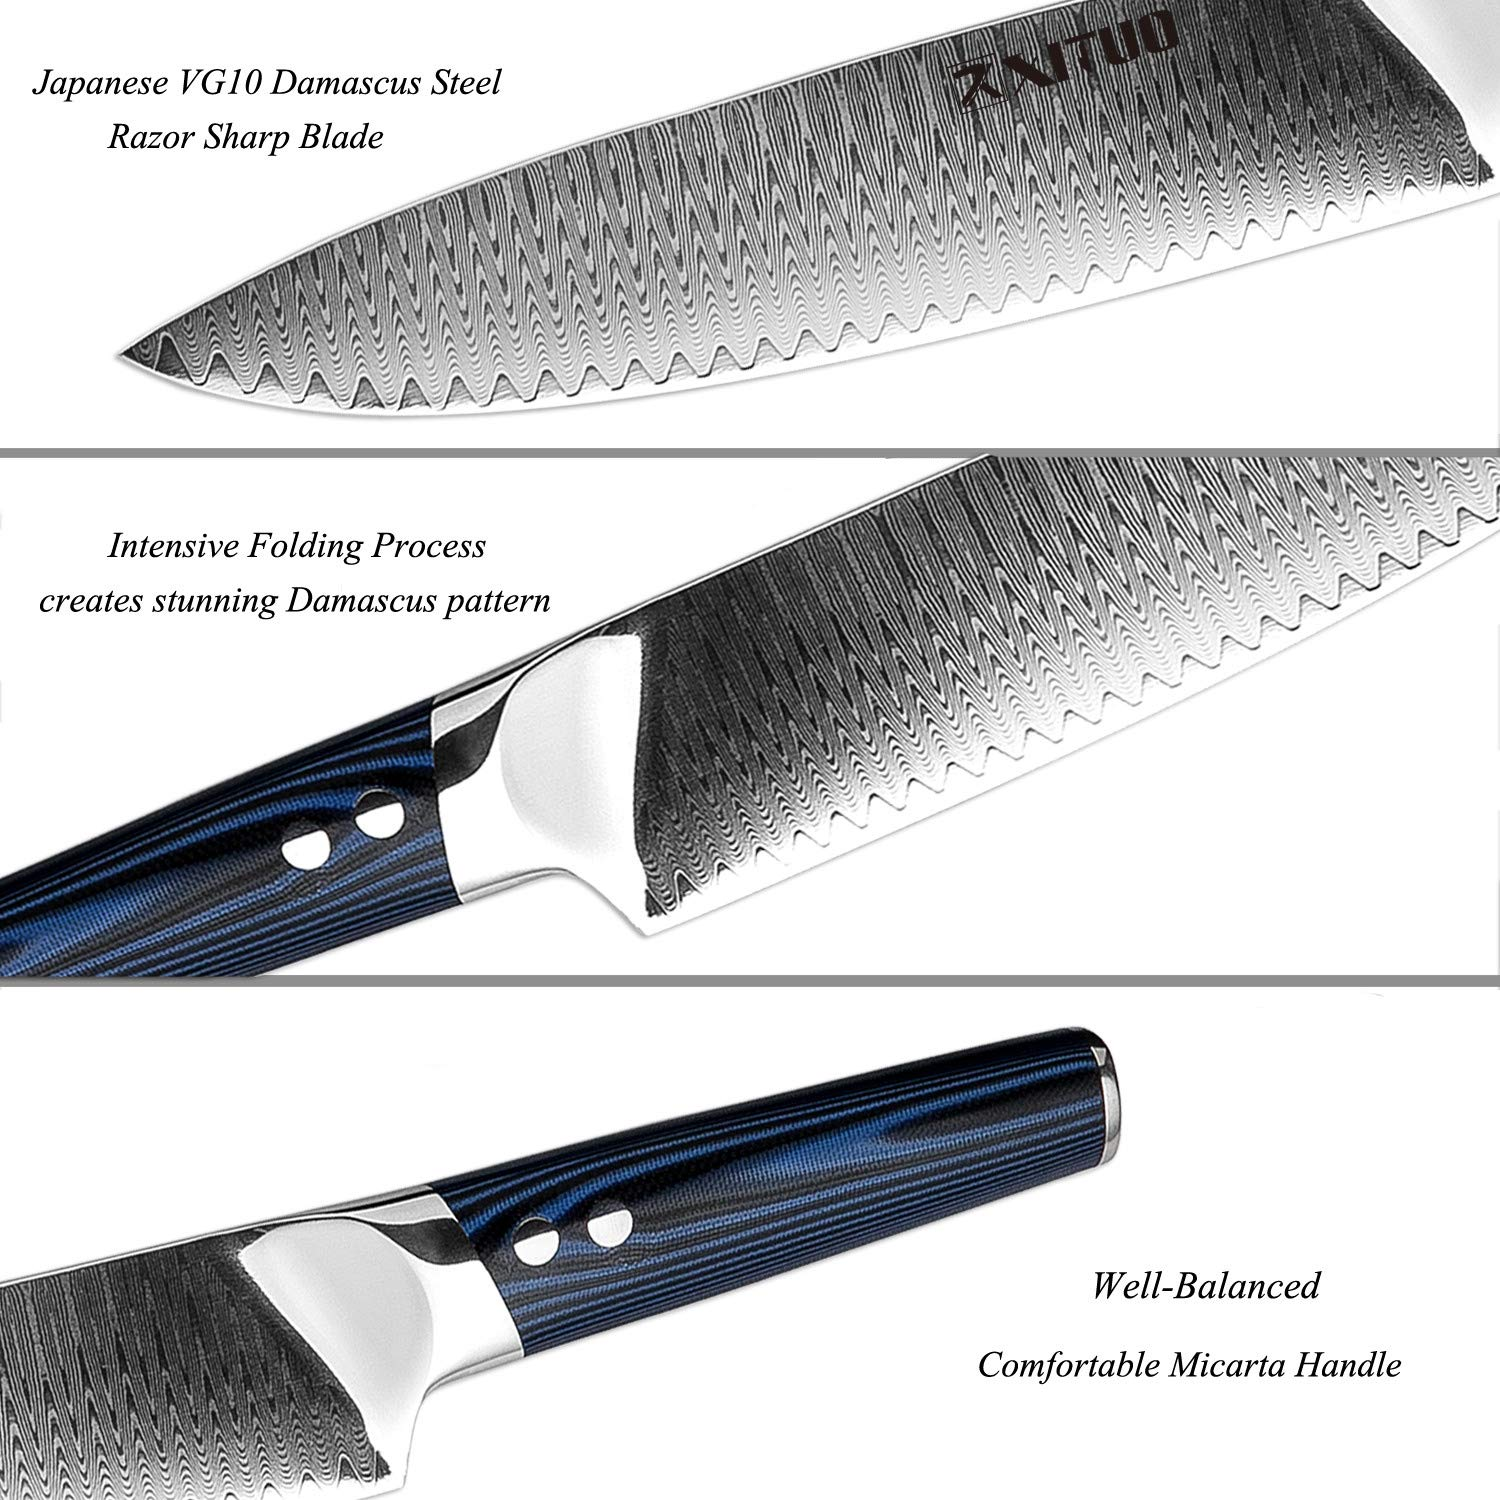 XITUO 8-inch Chef Knife Japanese VG 10 High Carbon Damascus Stainless Steel Kitchen Knife with Ergonomic Micarta Handle and Razor Sharp Blade For Dealing Meat, Fruits and Vegetables by XITUO (Image #2)